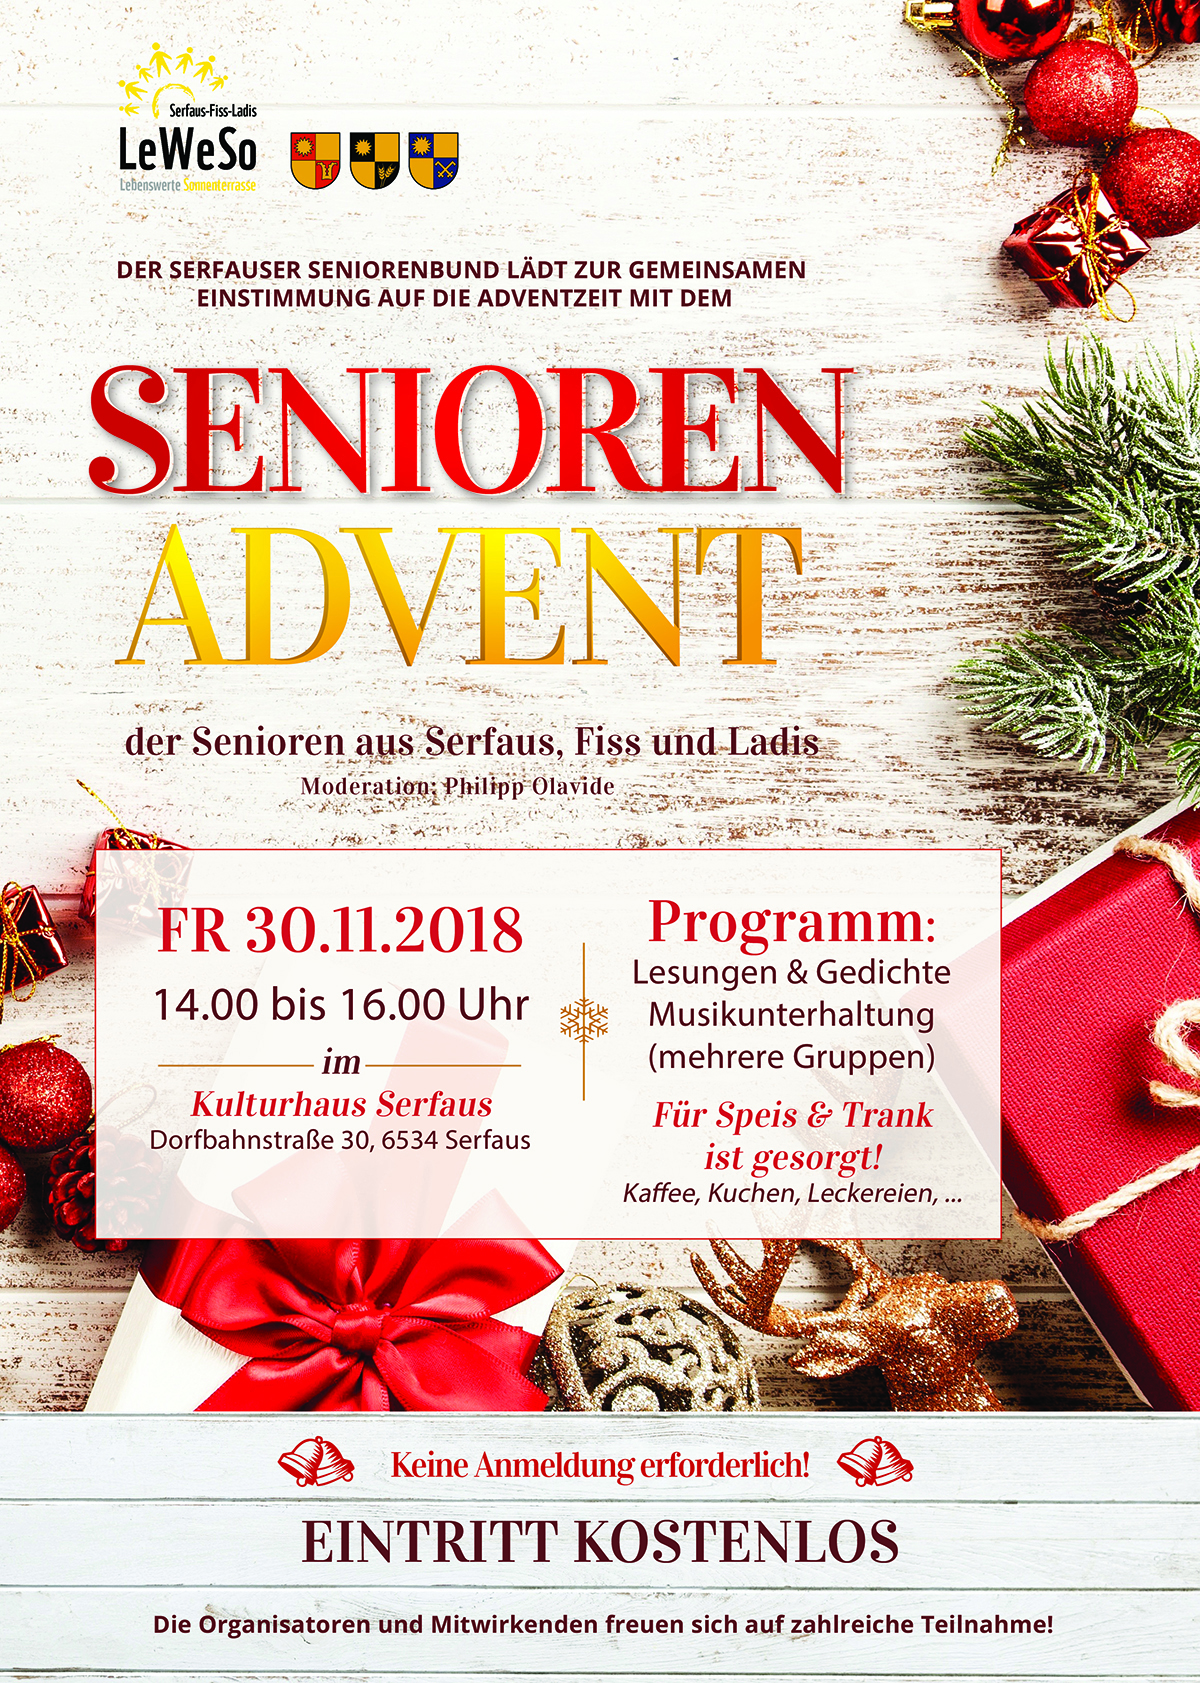 Plakat Seniorenadvent in Serfaus-Fiss-Ladis